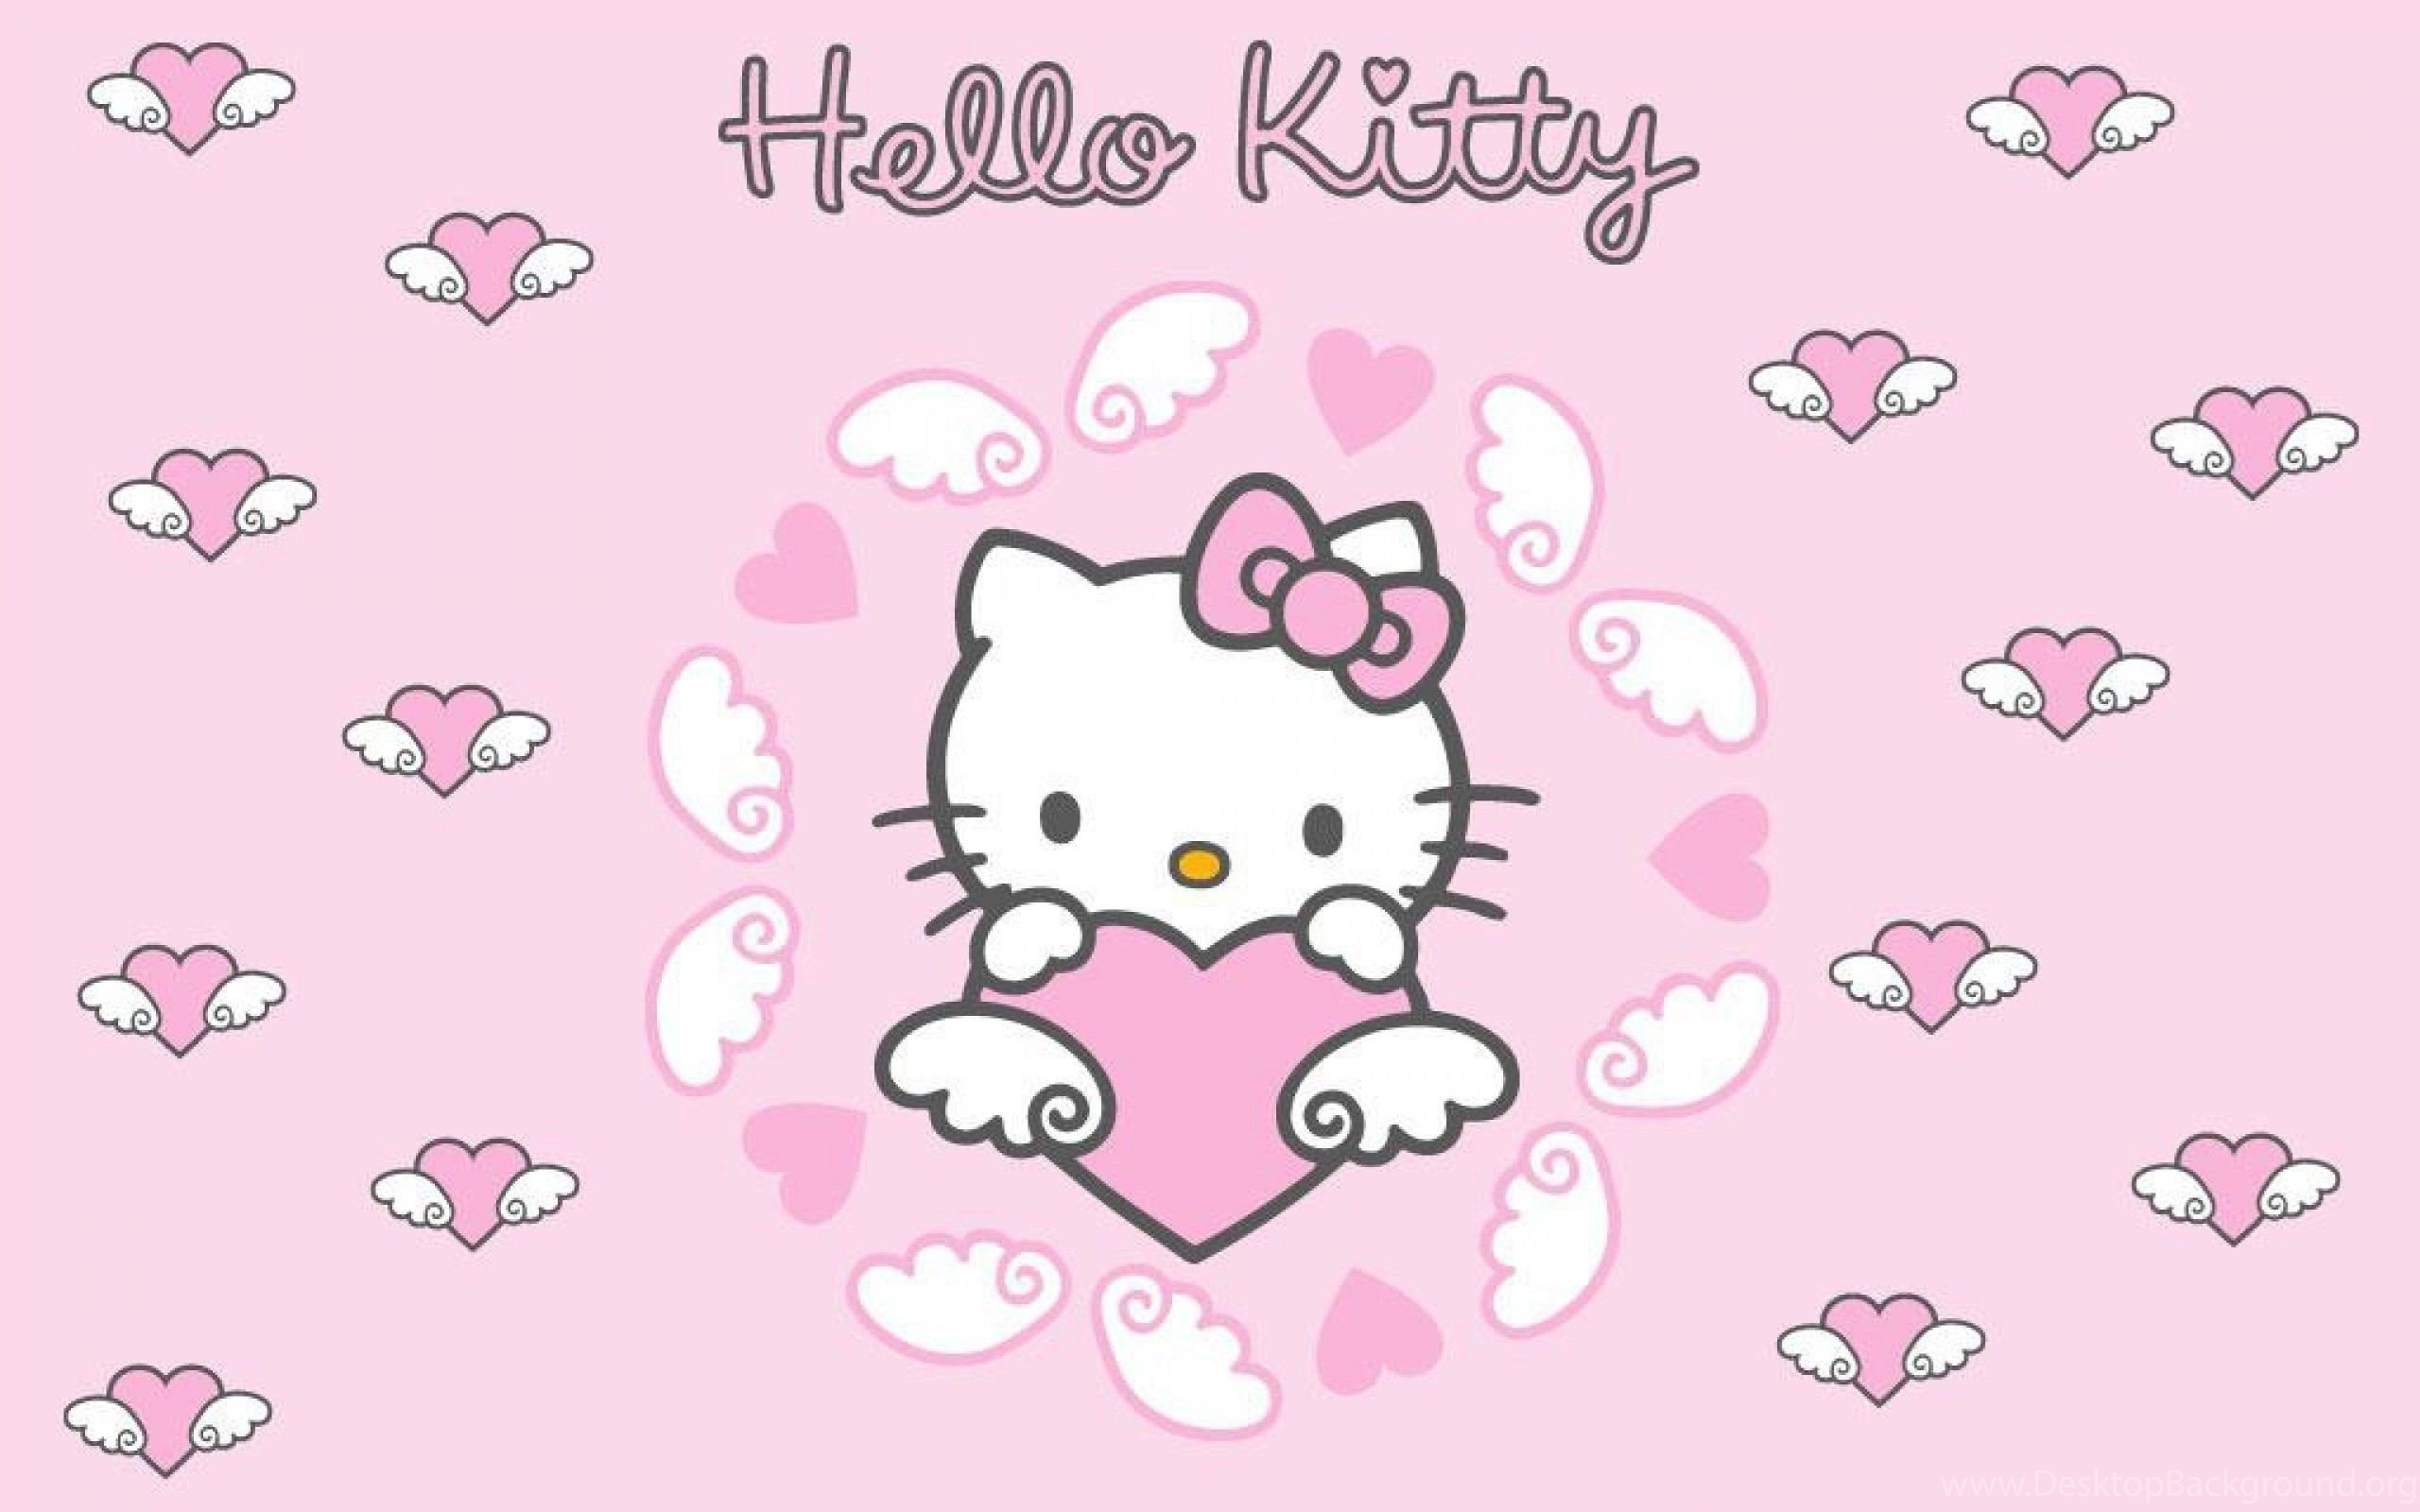 Fantastic Wallpaper Hello Kitty Mac - 985071-hello-kitty-desktop-background-wallpapers-2560x1600-for-mac  Snapshot_647919.jpg